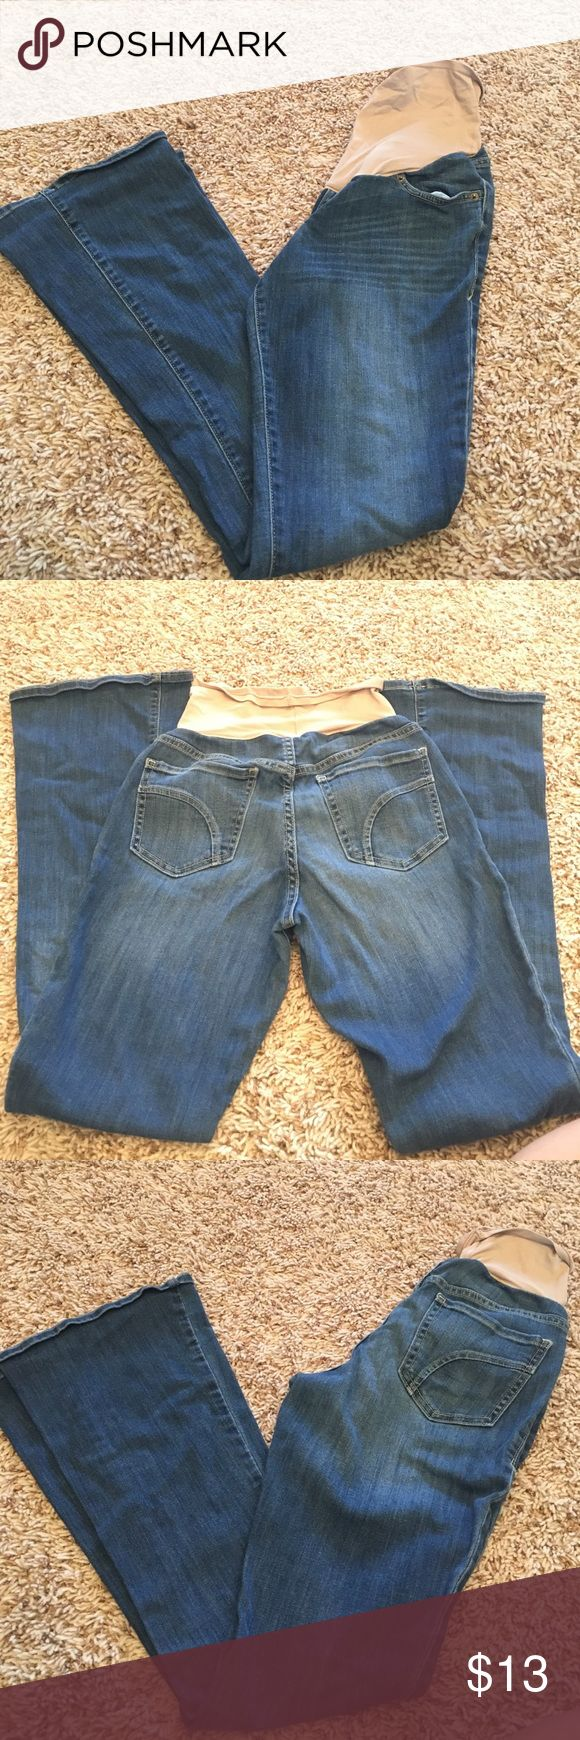 Old navy maternity Jean size 2 In great condition! Only wore for one pregnancy! Still have a lot of use left! Old Navy Jeans Boot Cut